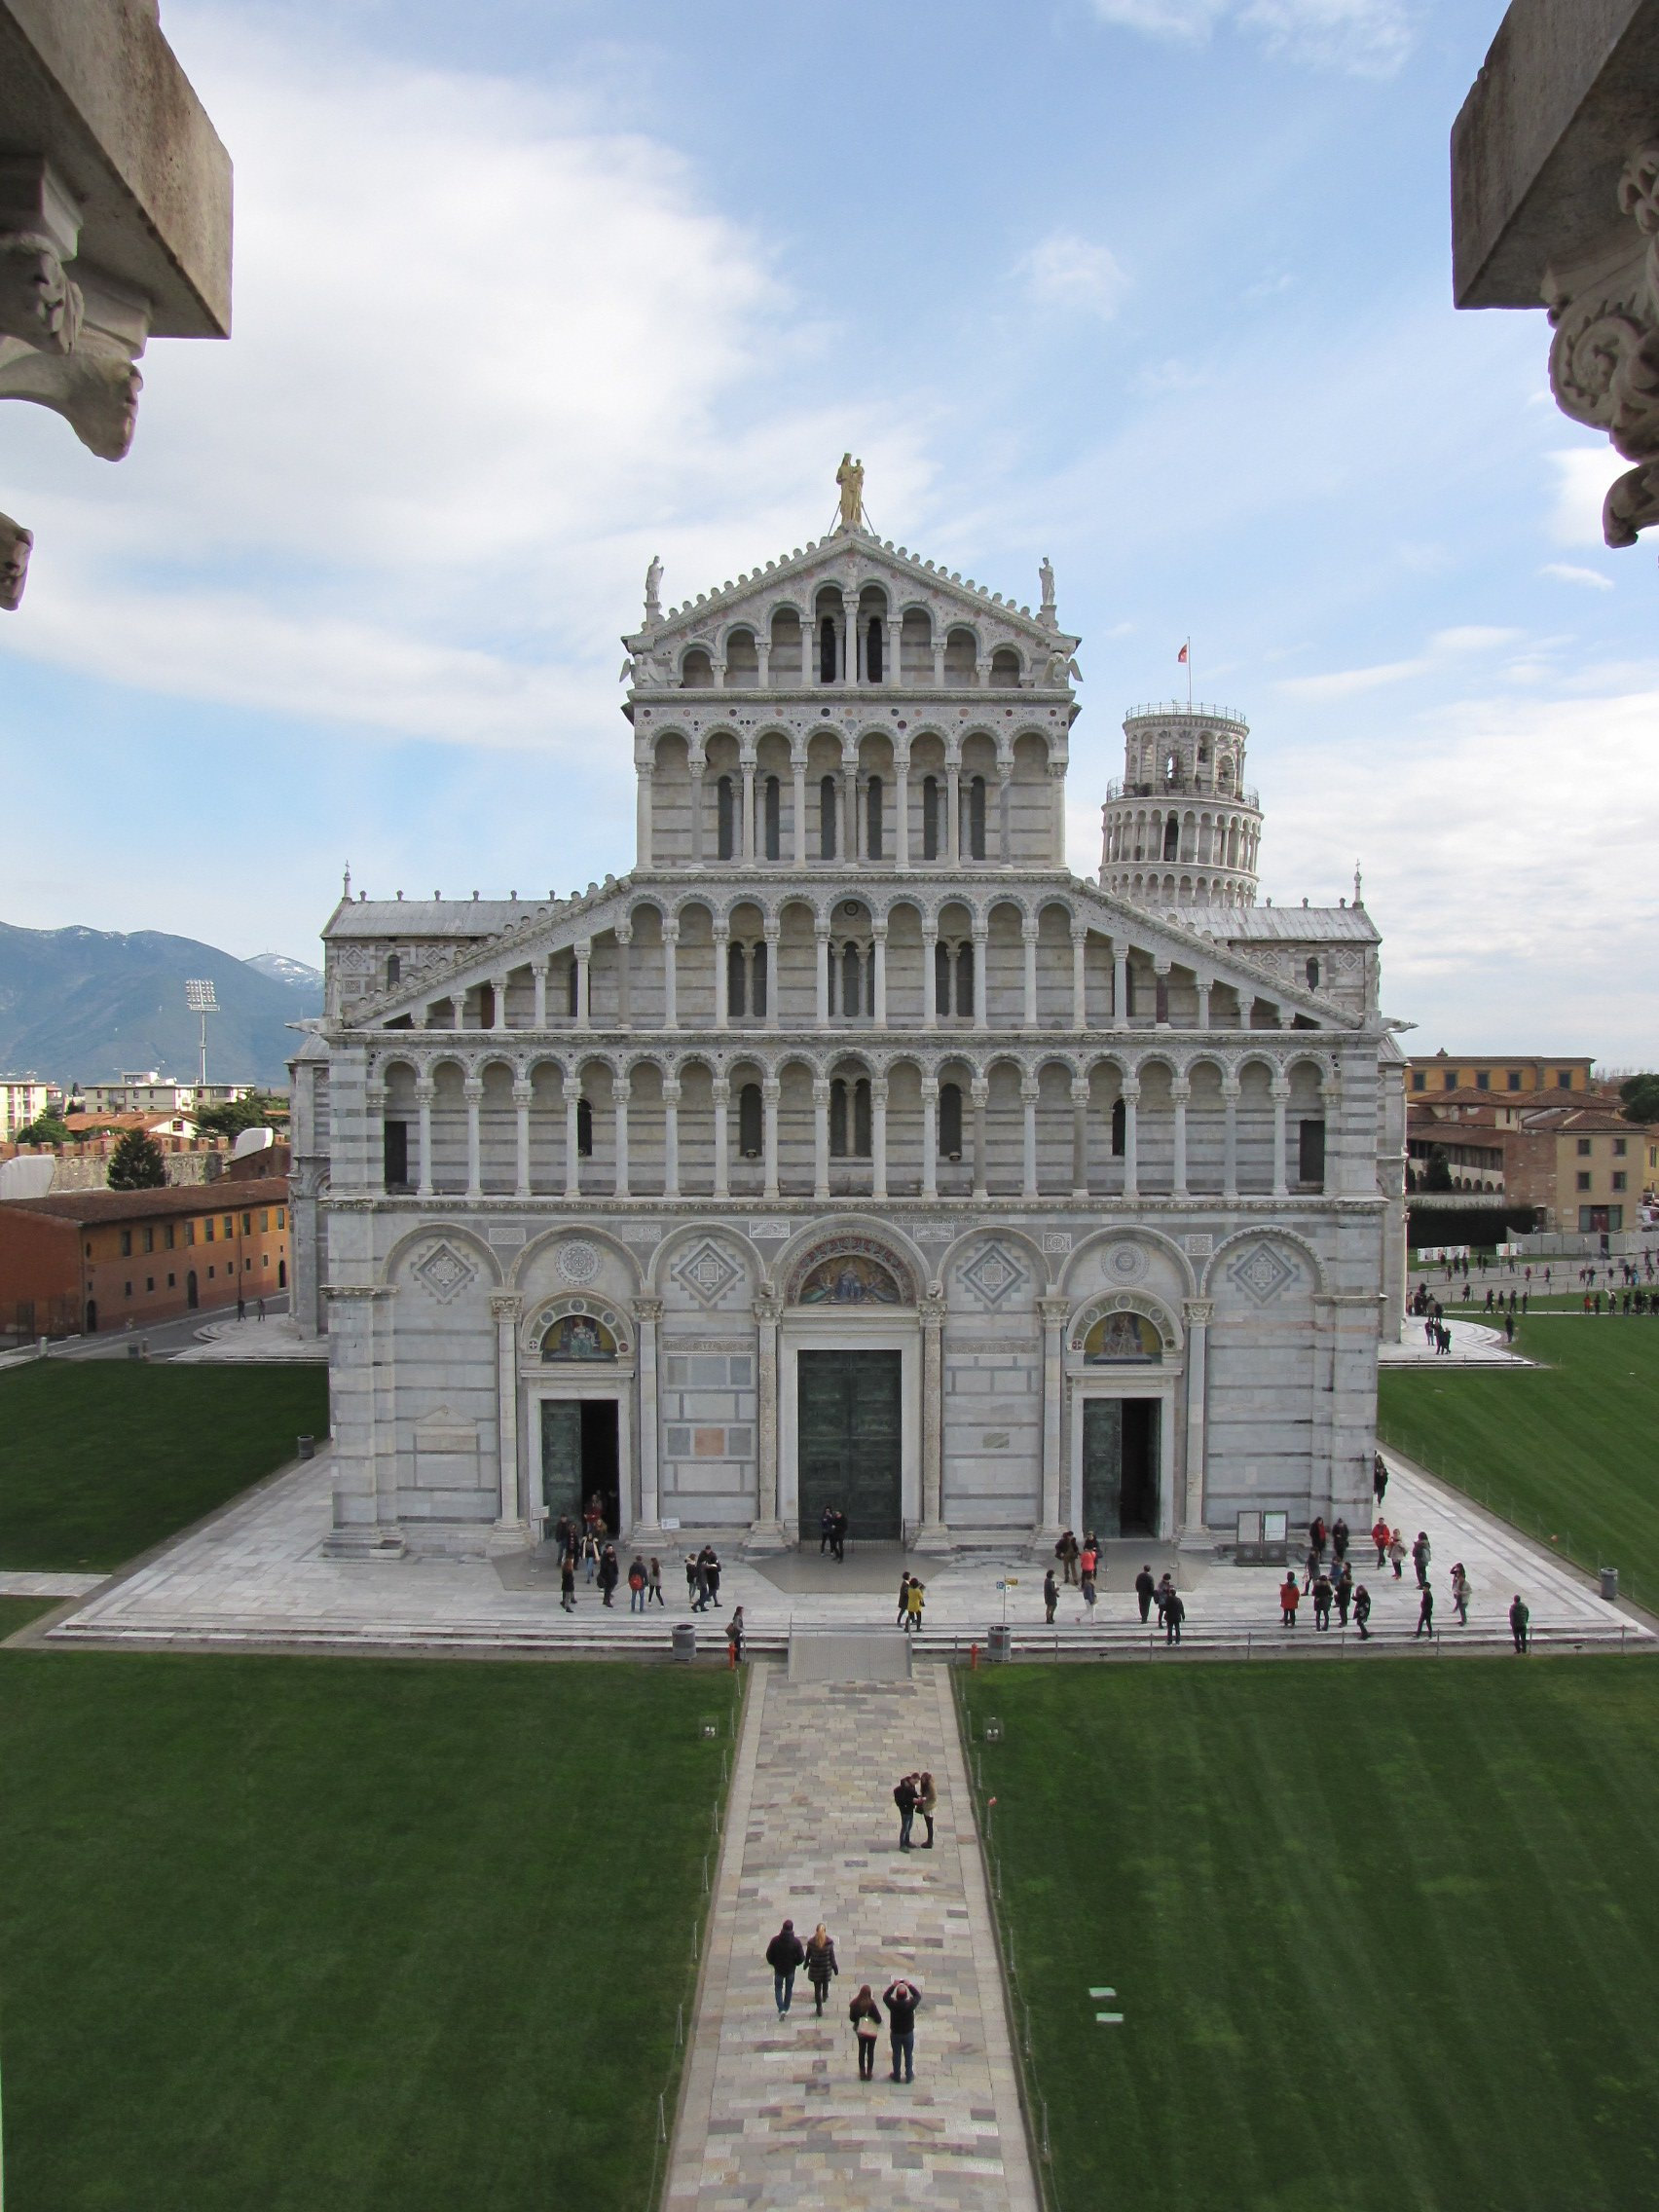 View of the cathedralfrom the top of the baptistry.